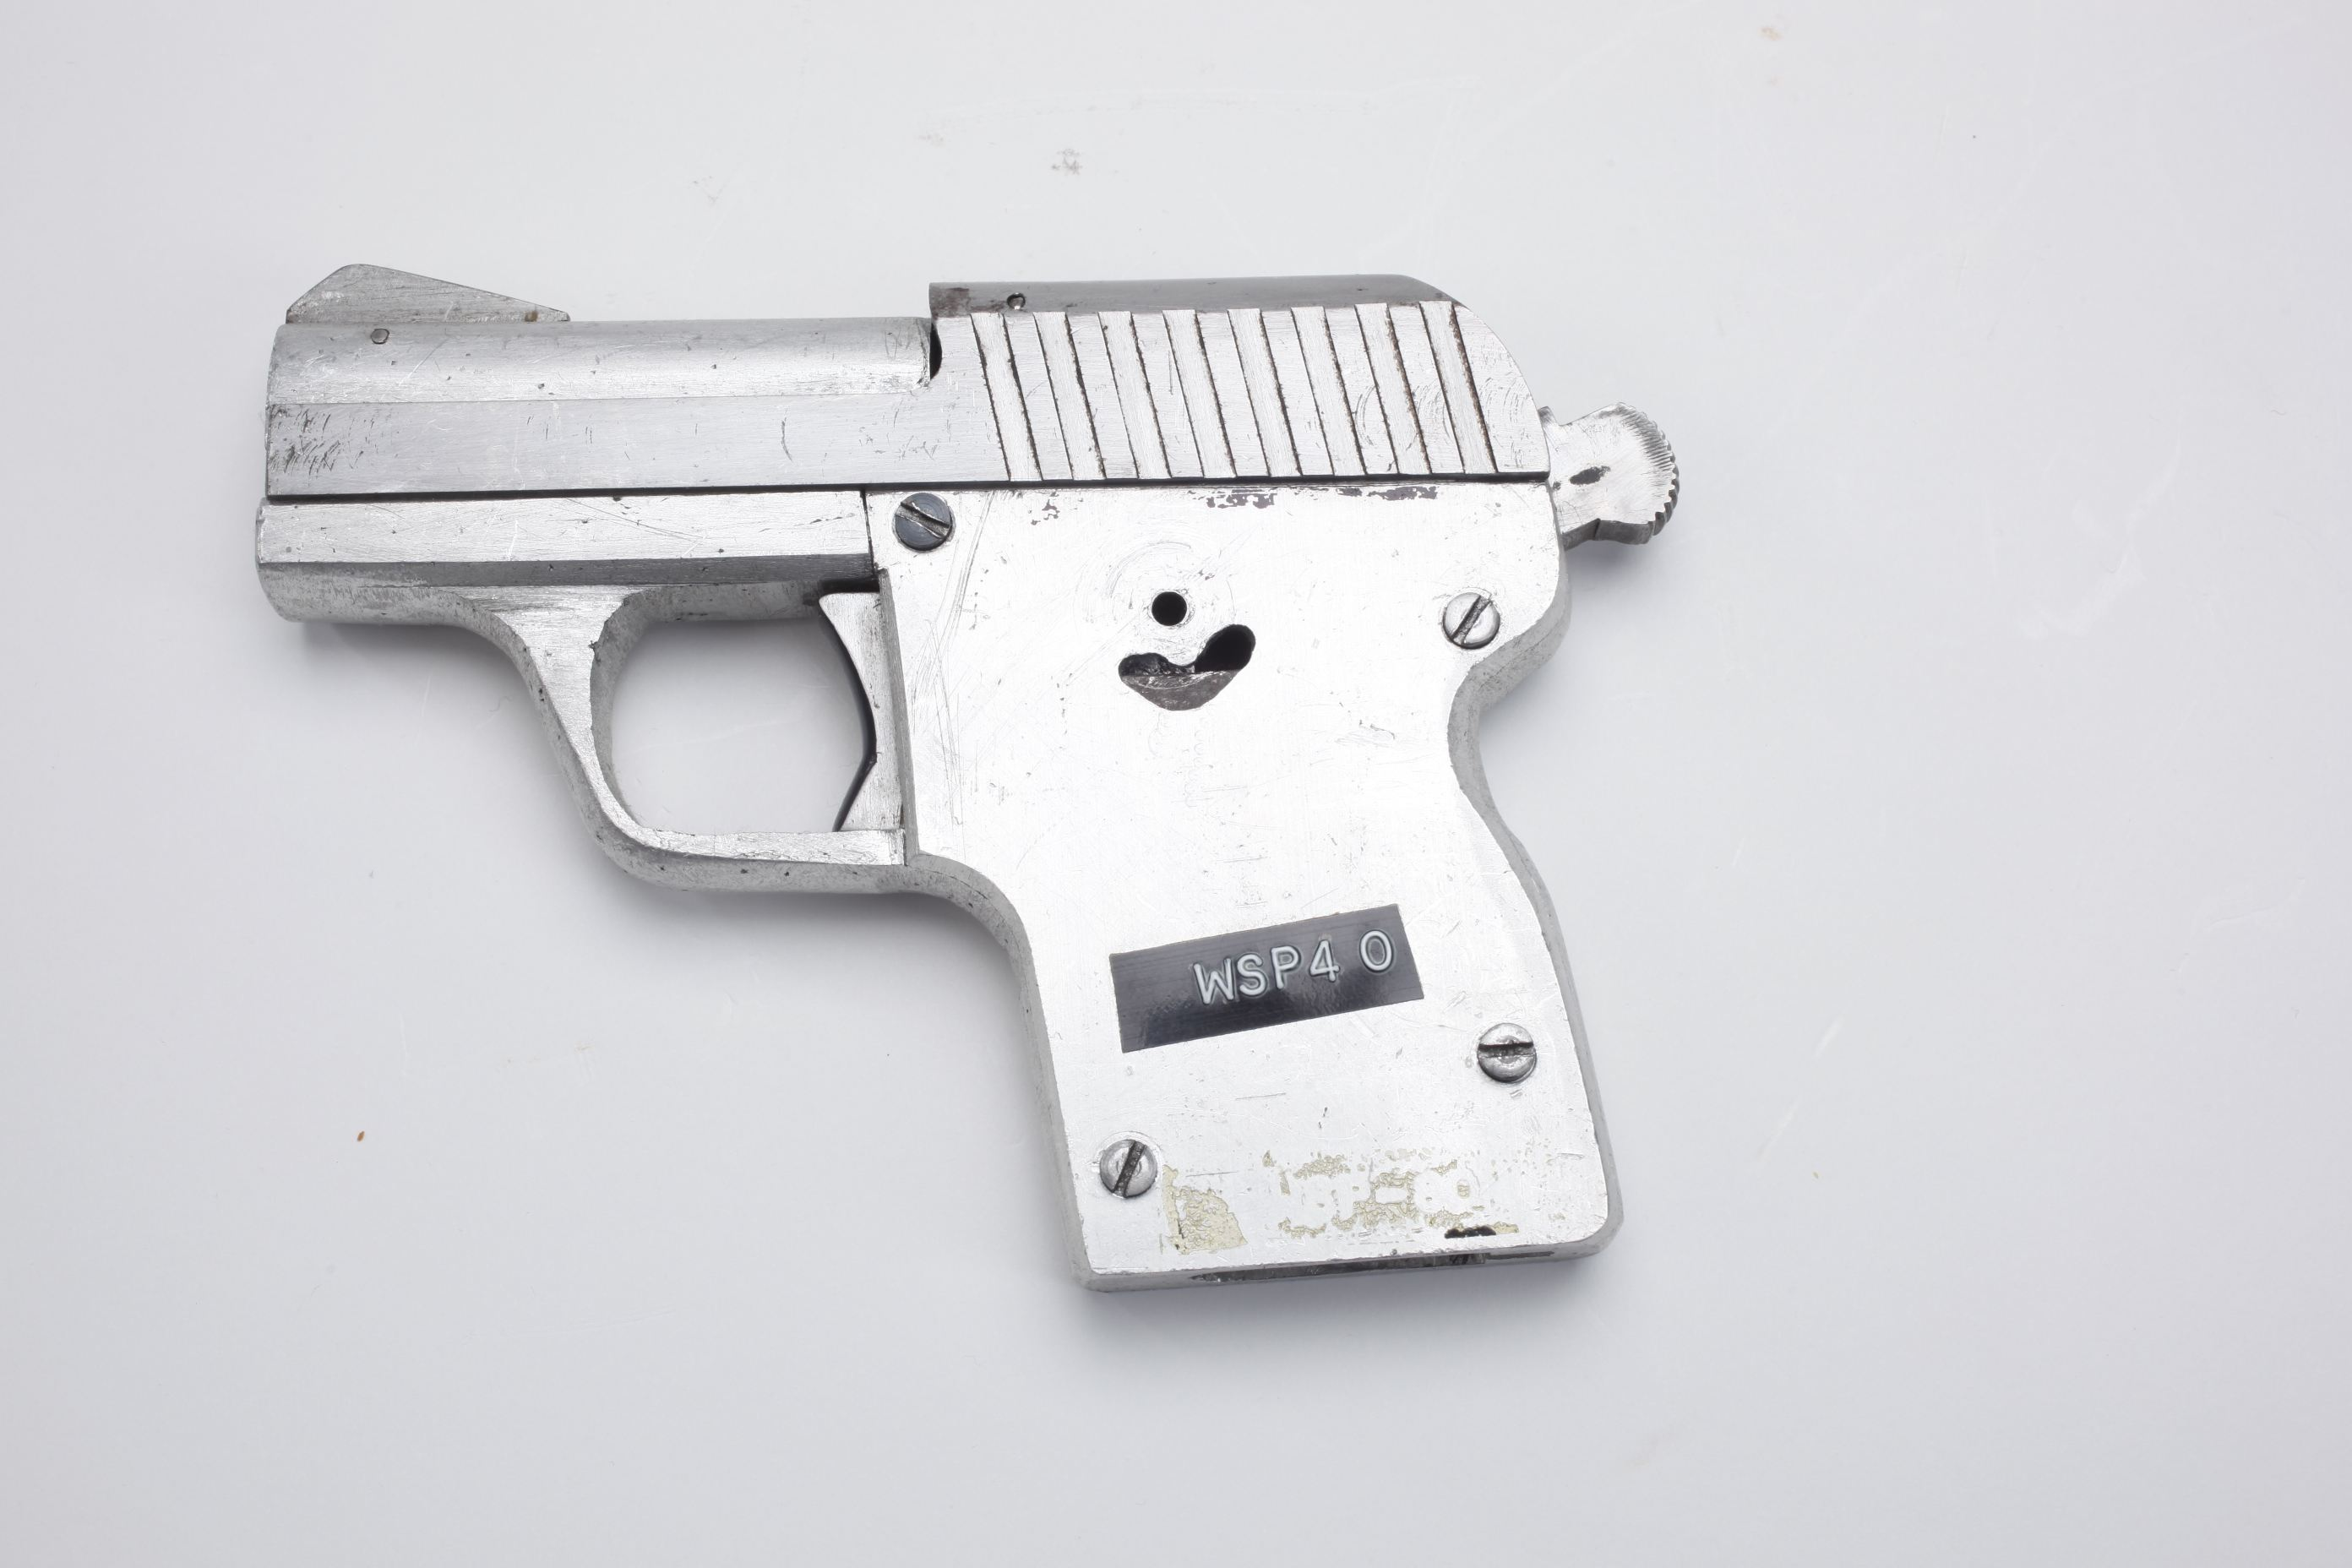 W. H. B. Smith WSP 40 Prototype Pistol